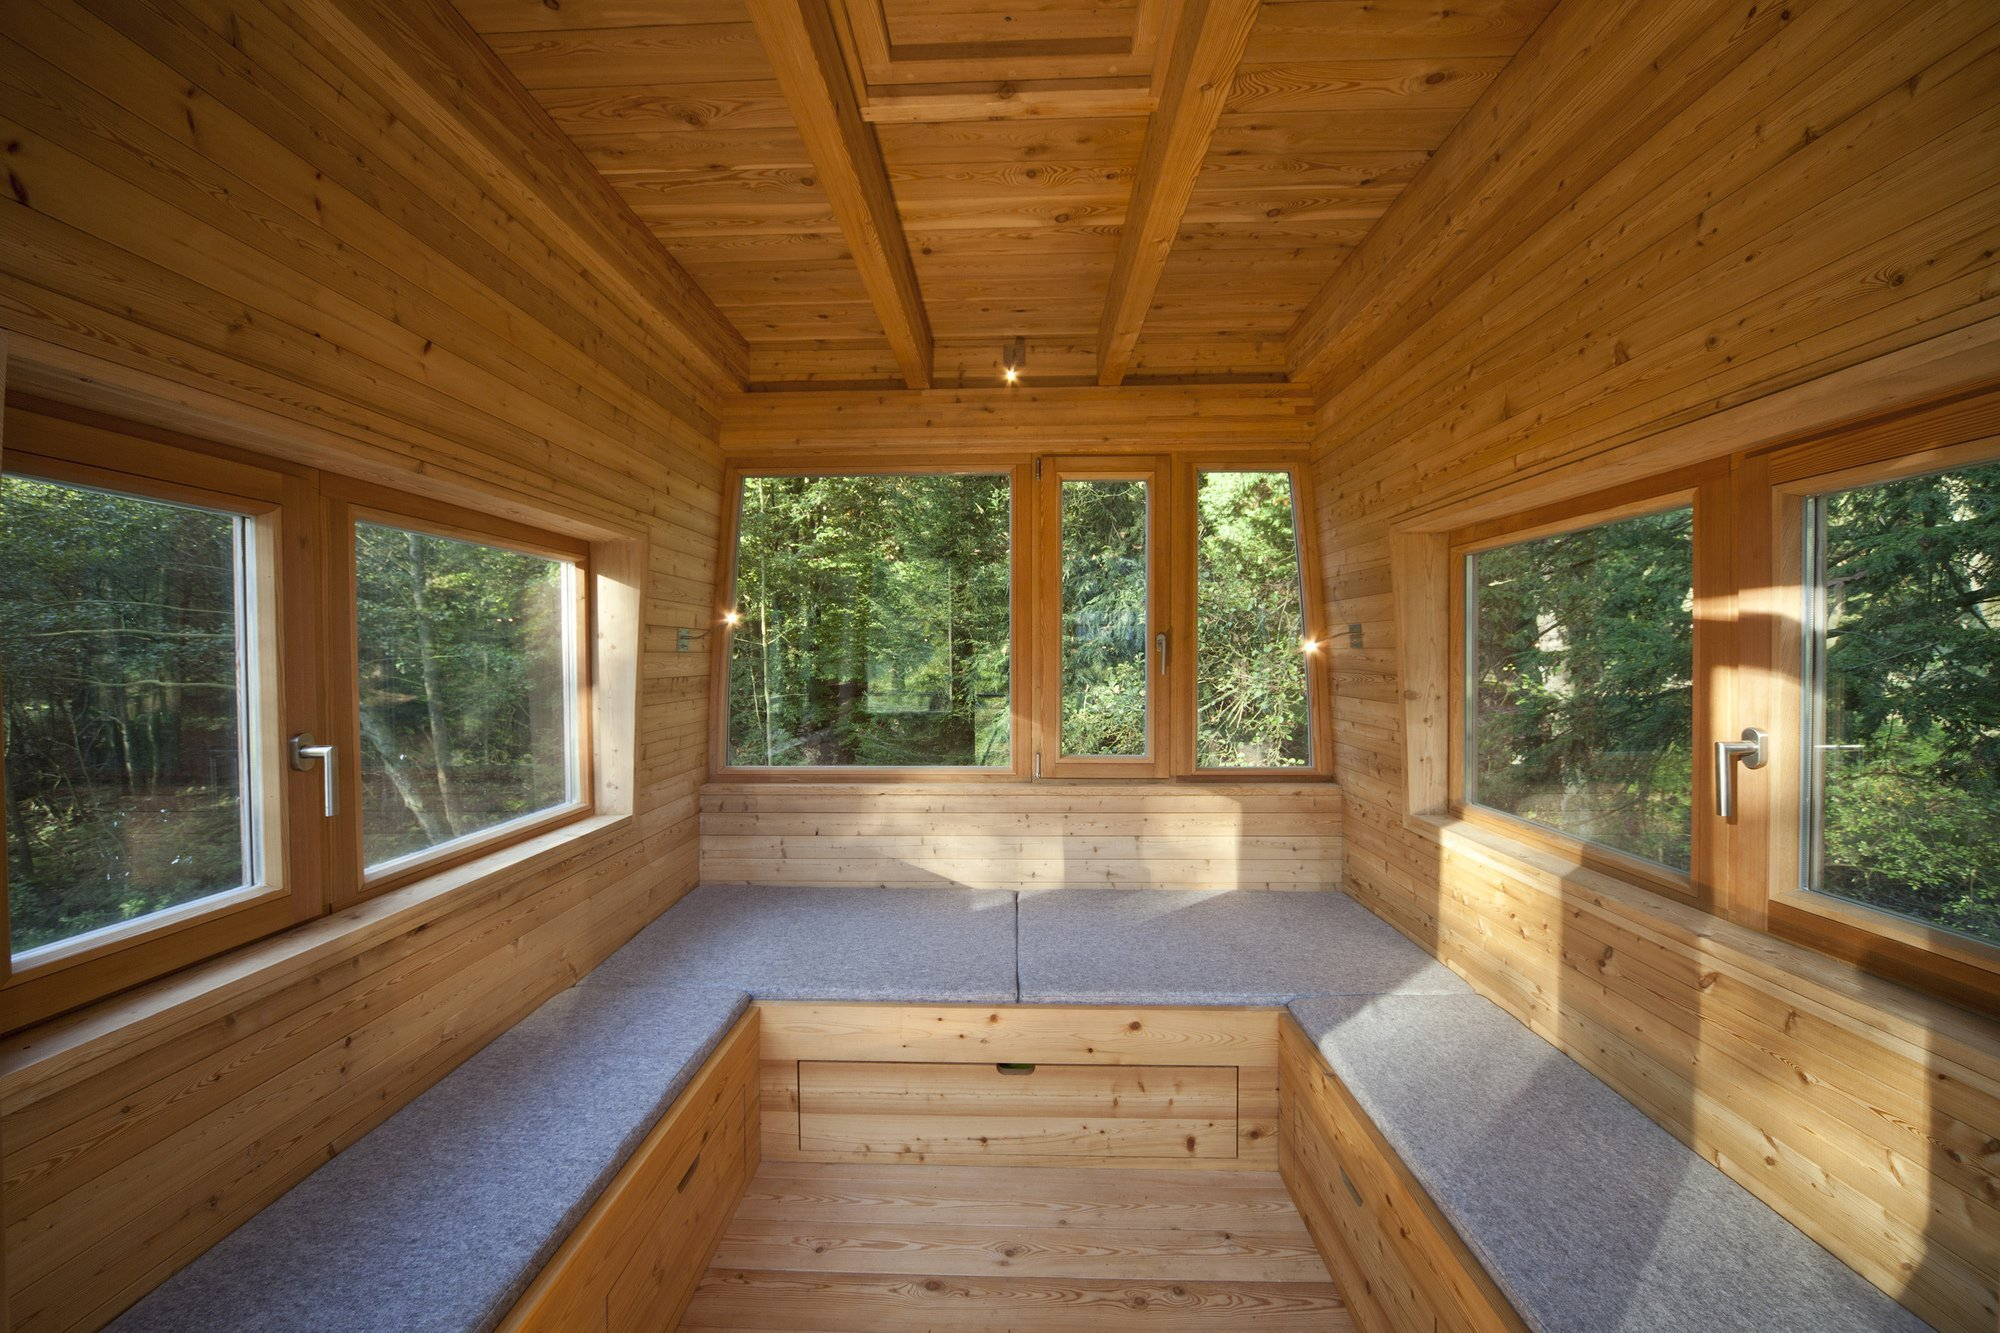 Treehouse Solling by Baumraum - Uslar Germany - Treehouse - Seating - Humble Homes